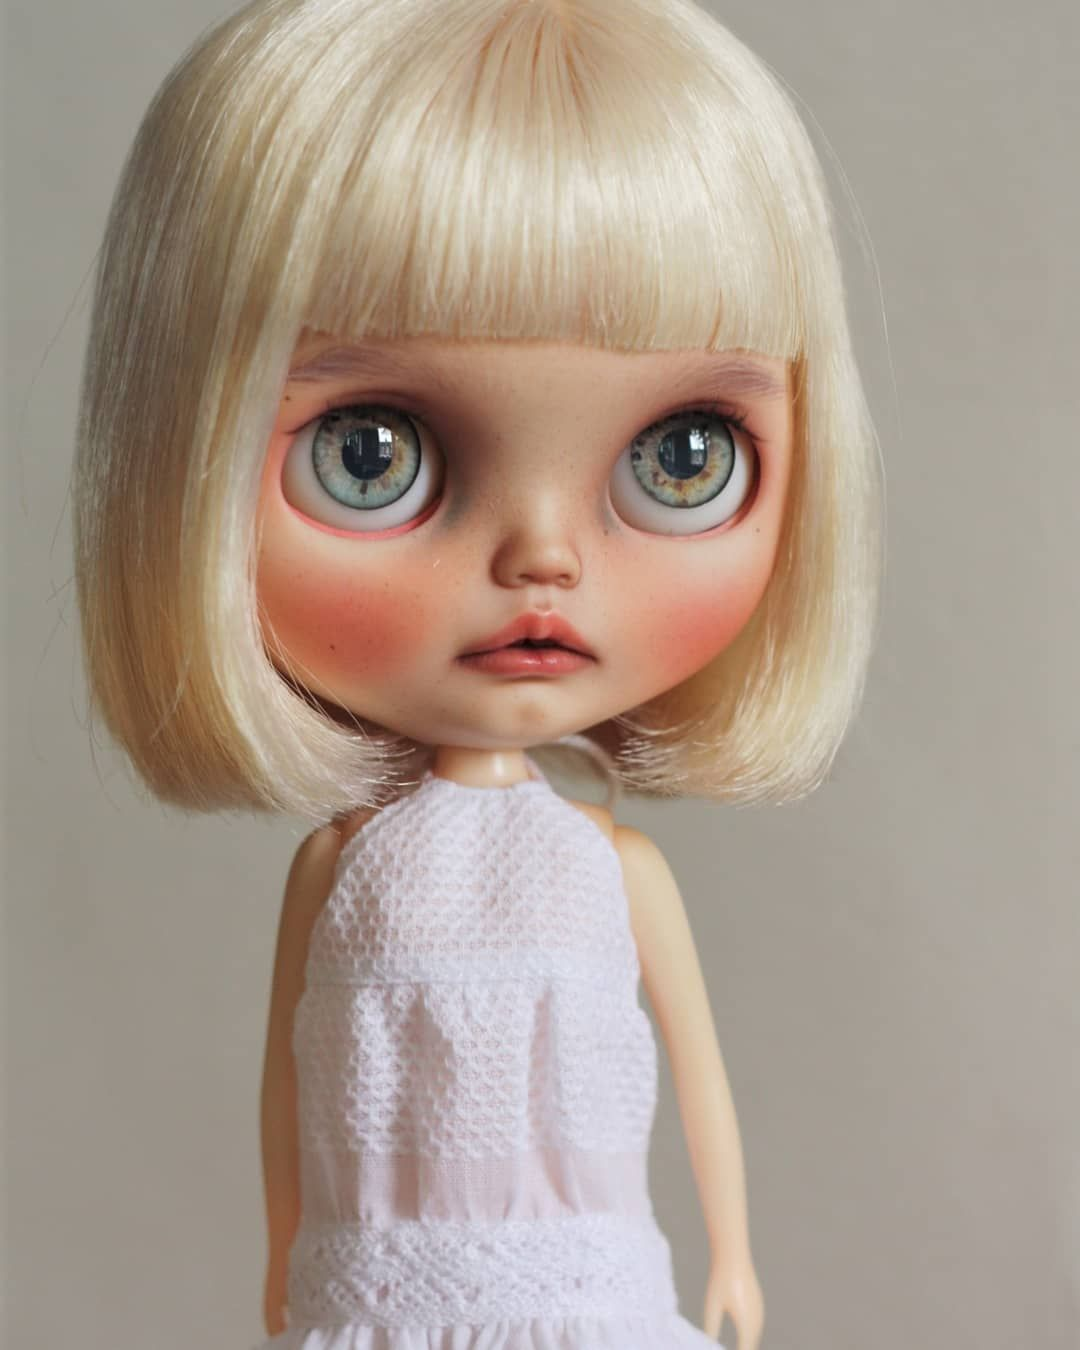 My Little Scandinavian Girl Maisy Tiinacustom Tiinavanhatupa Customblythe Rbl Kkokoro Whitebeachdress Puppel Felt Dolls Custom Dolls Blythe Dolls